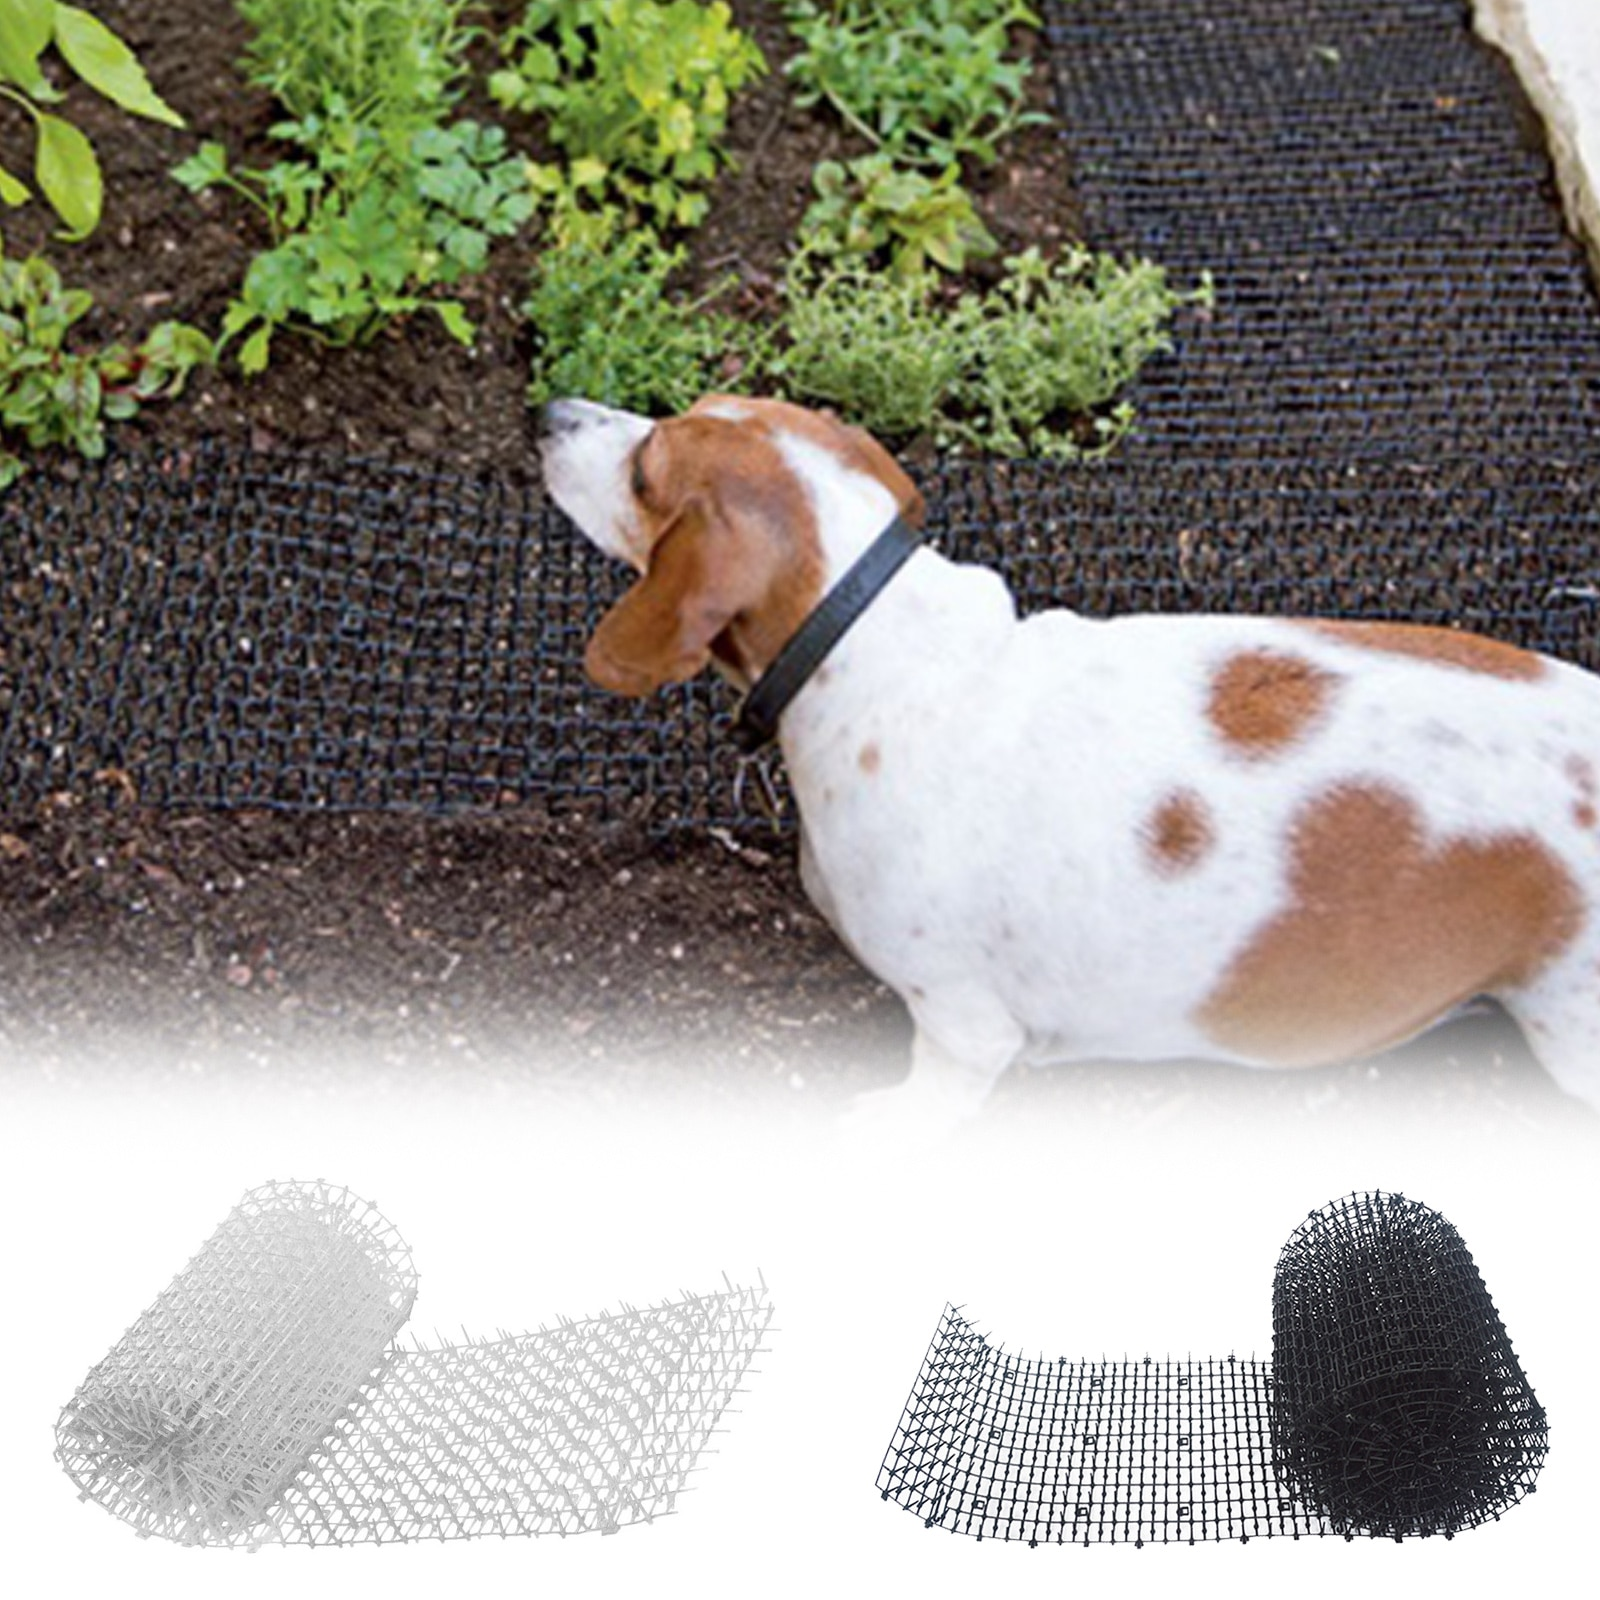 Garden Prickle Strip Dig Stop Cat Repellent Deterrent Mat Spike Portable Anti-Cat Dog Outdoor Garden Supplies 2mx30cm